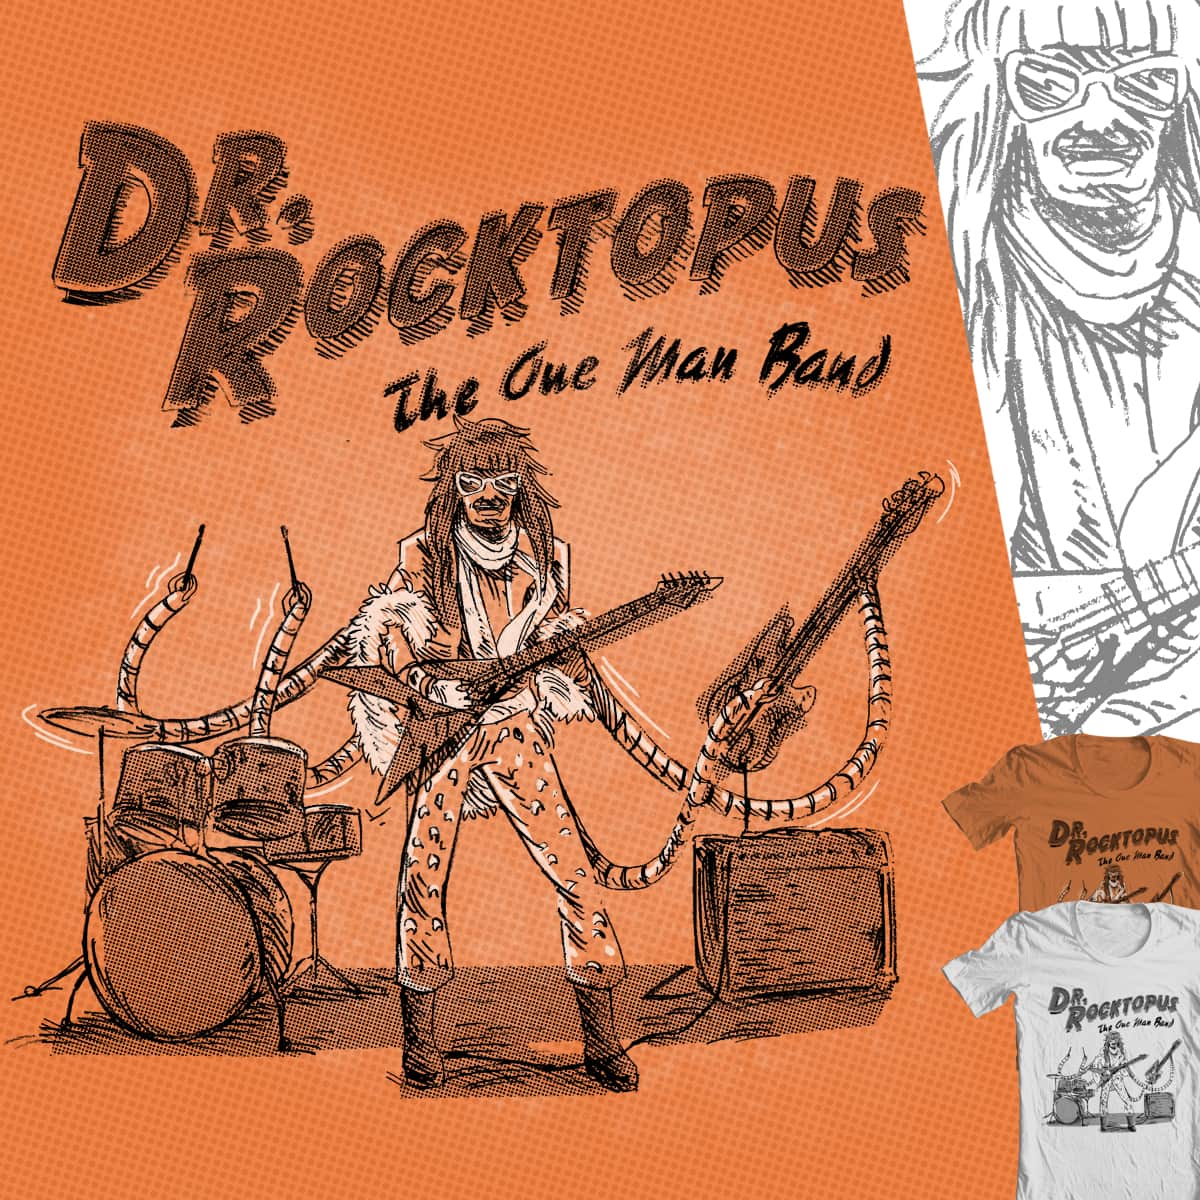 Dr. Rocktopus by nerrik and FreeImagination on Threadless